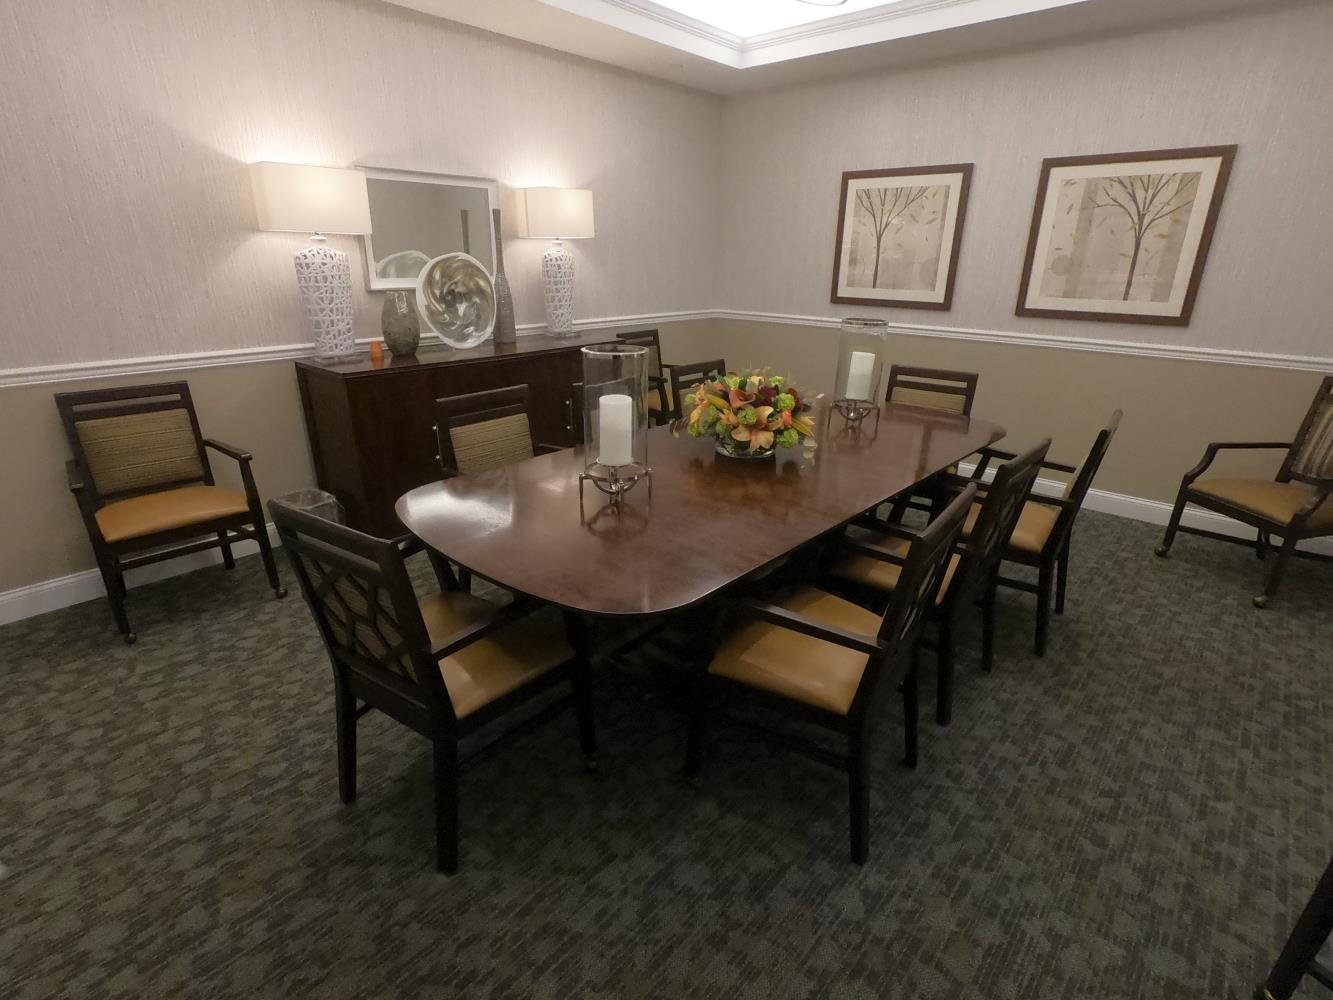 Nassau atria, private dining area